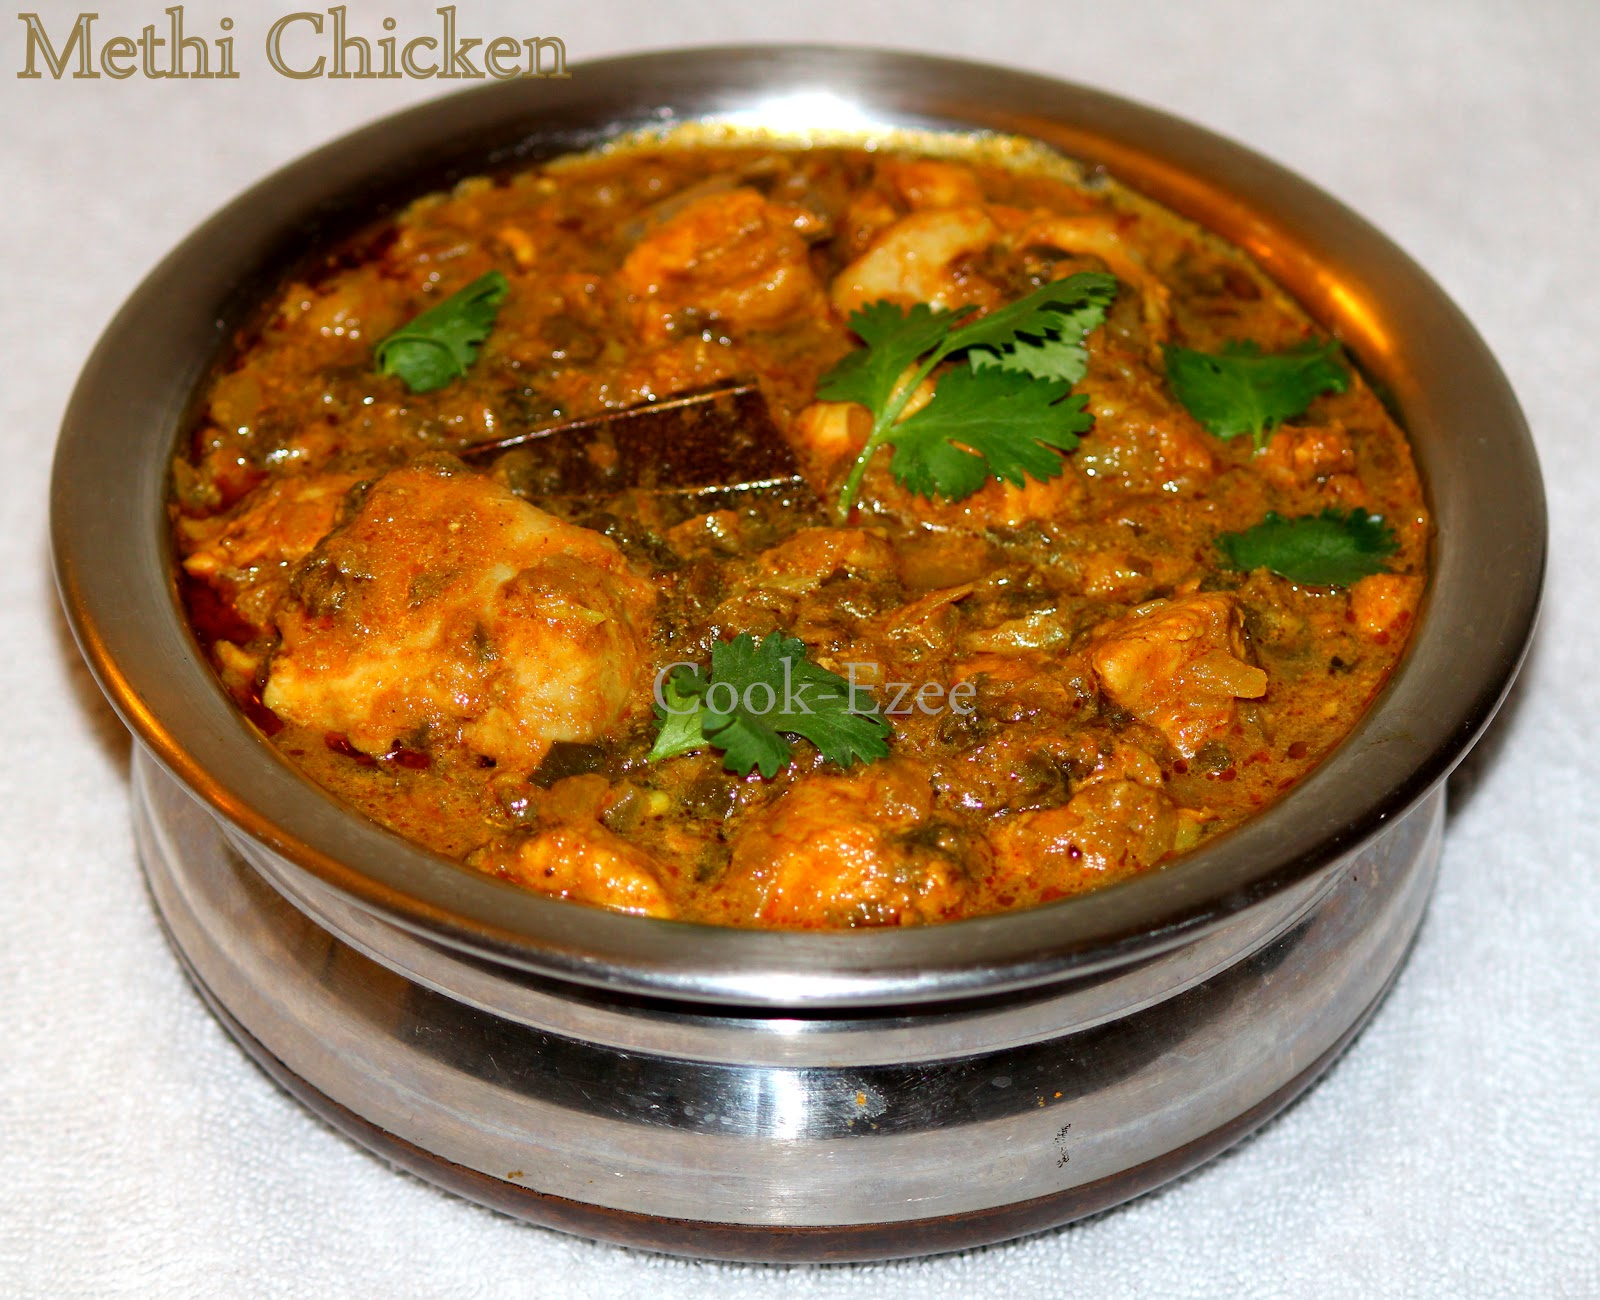 COOK-EZEE: Methi Murgh/Methi Chicken/Chicken with Fenugreek leaves